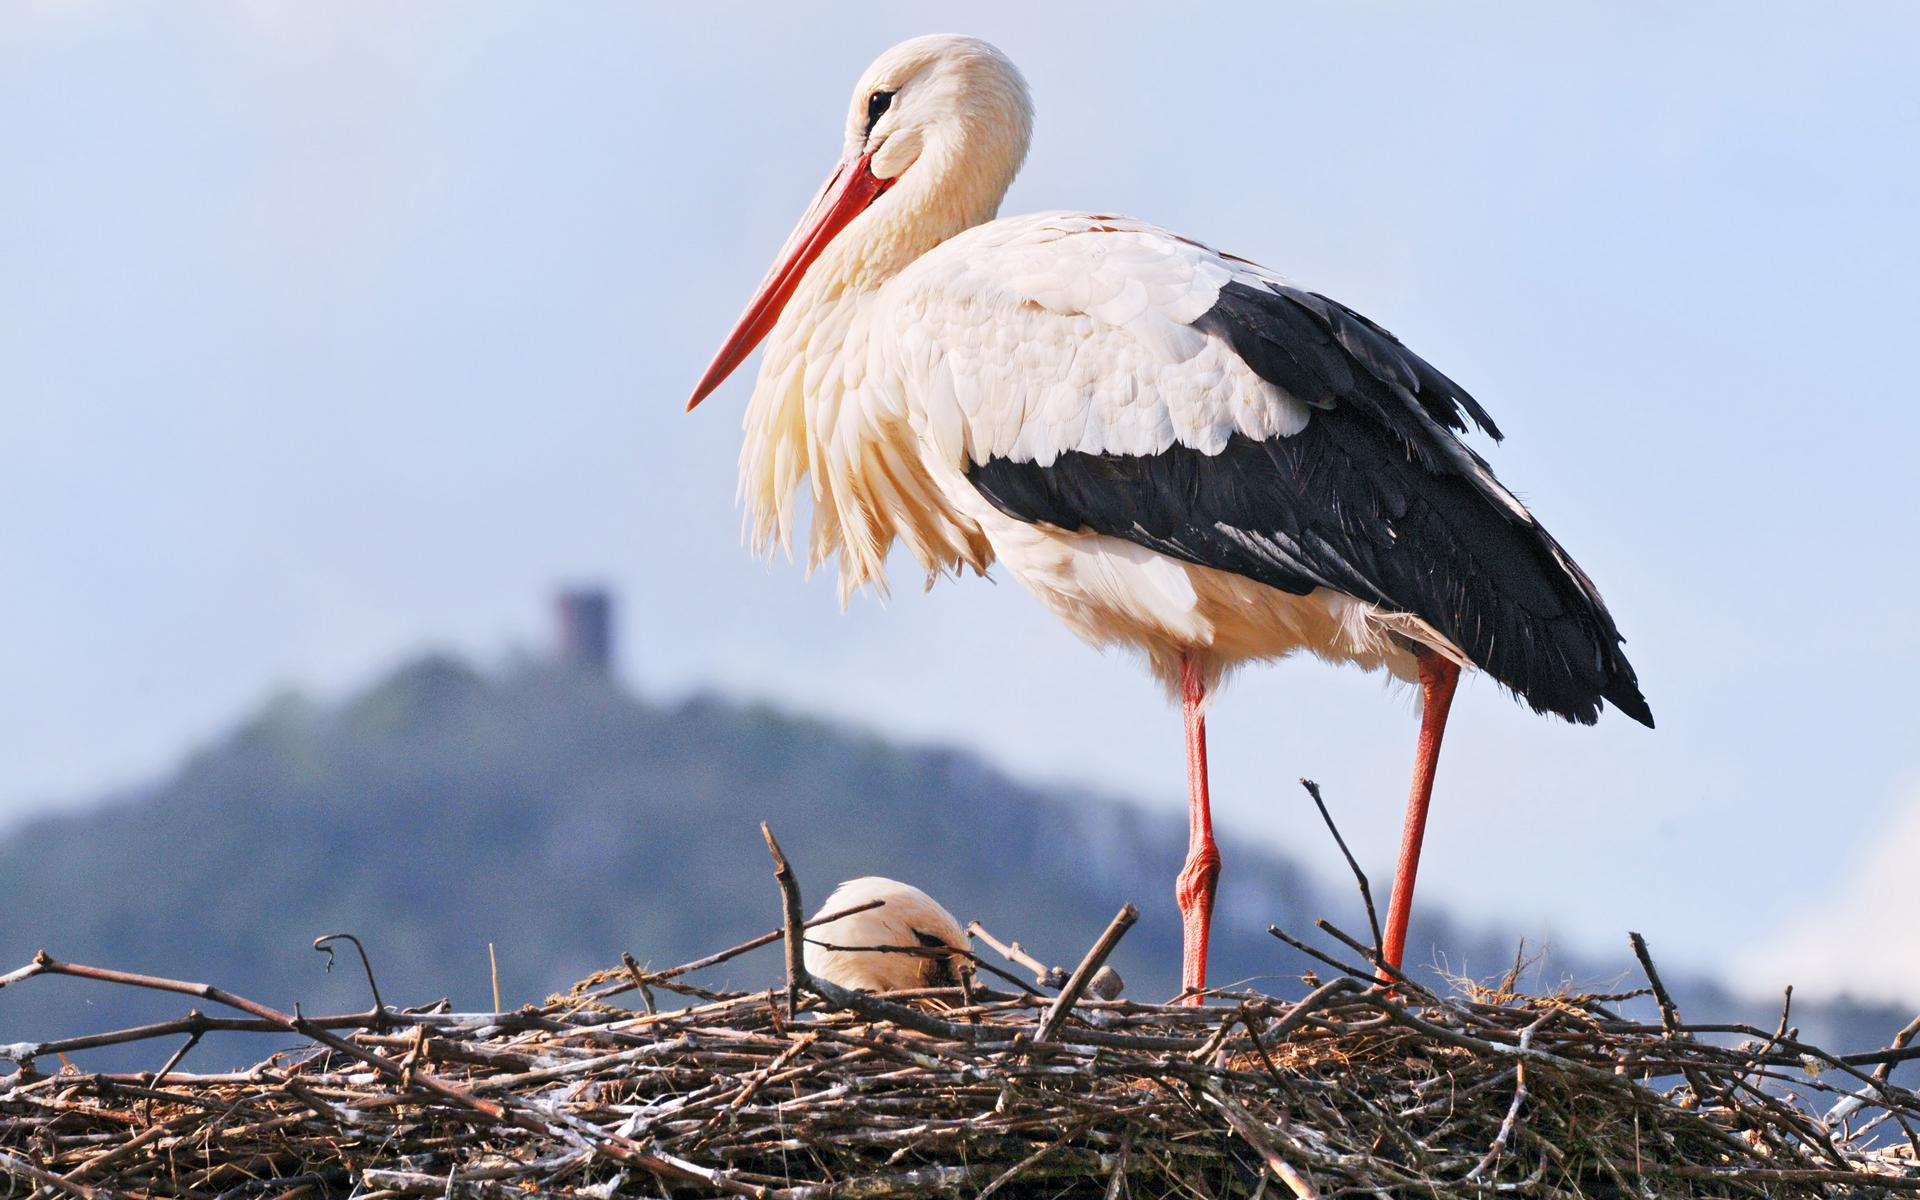 Stork pictures